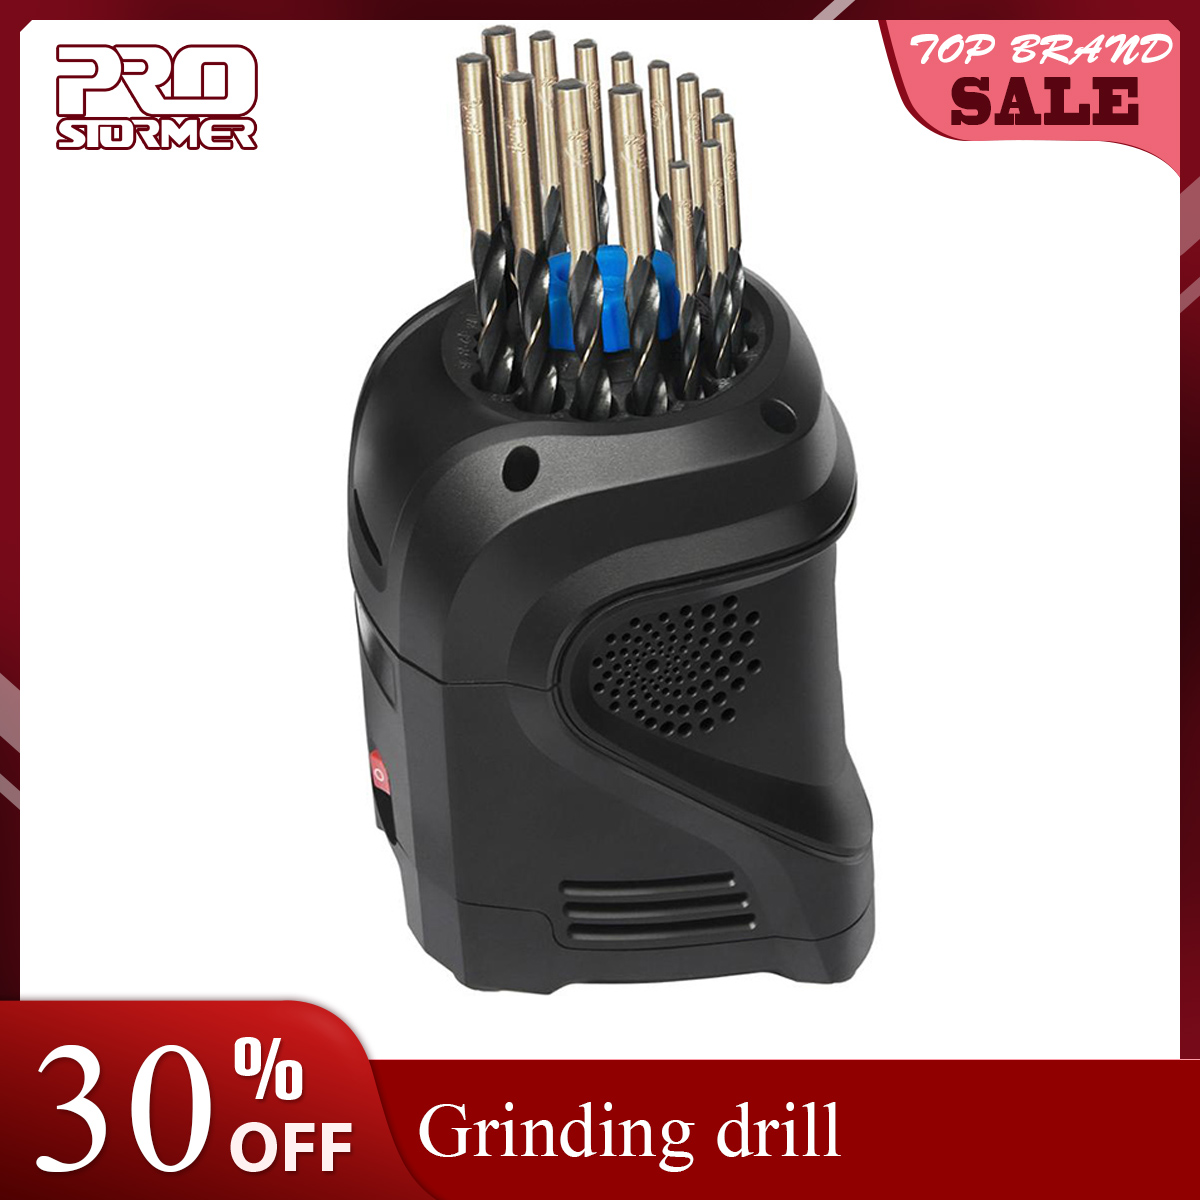 Prostormer 3 12mm Electricty Sharpening Drills 95W High Speed Drill Bit Grinder Sharpening Drills Household Grinding